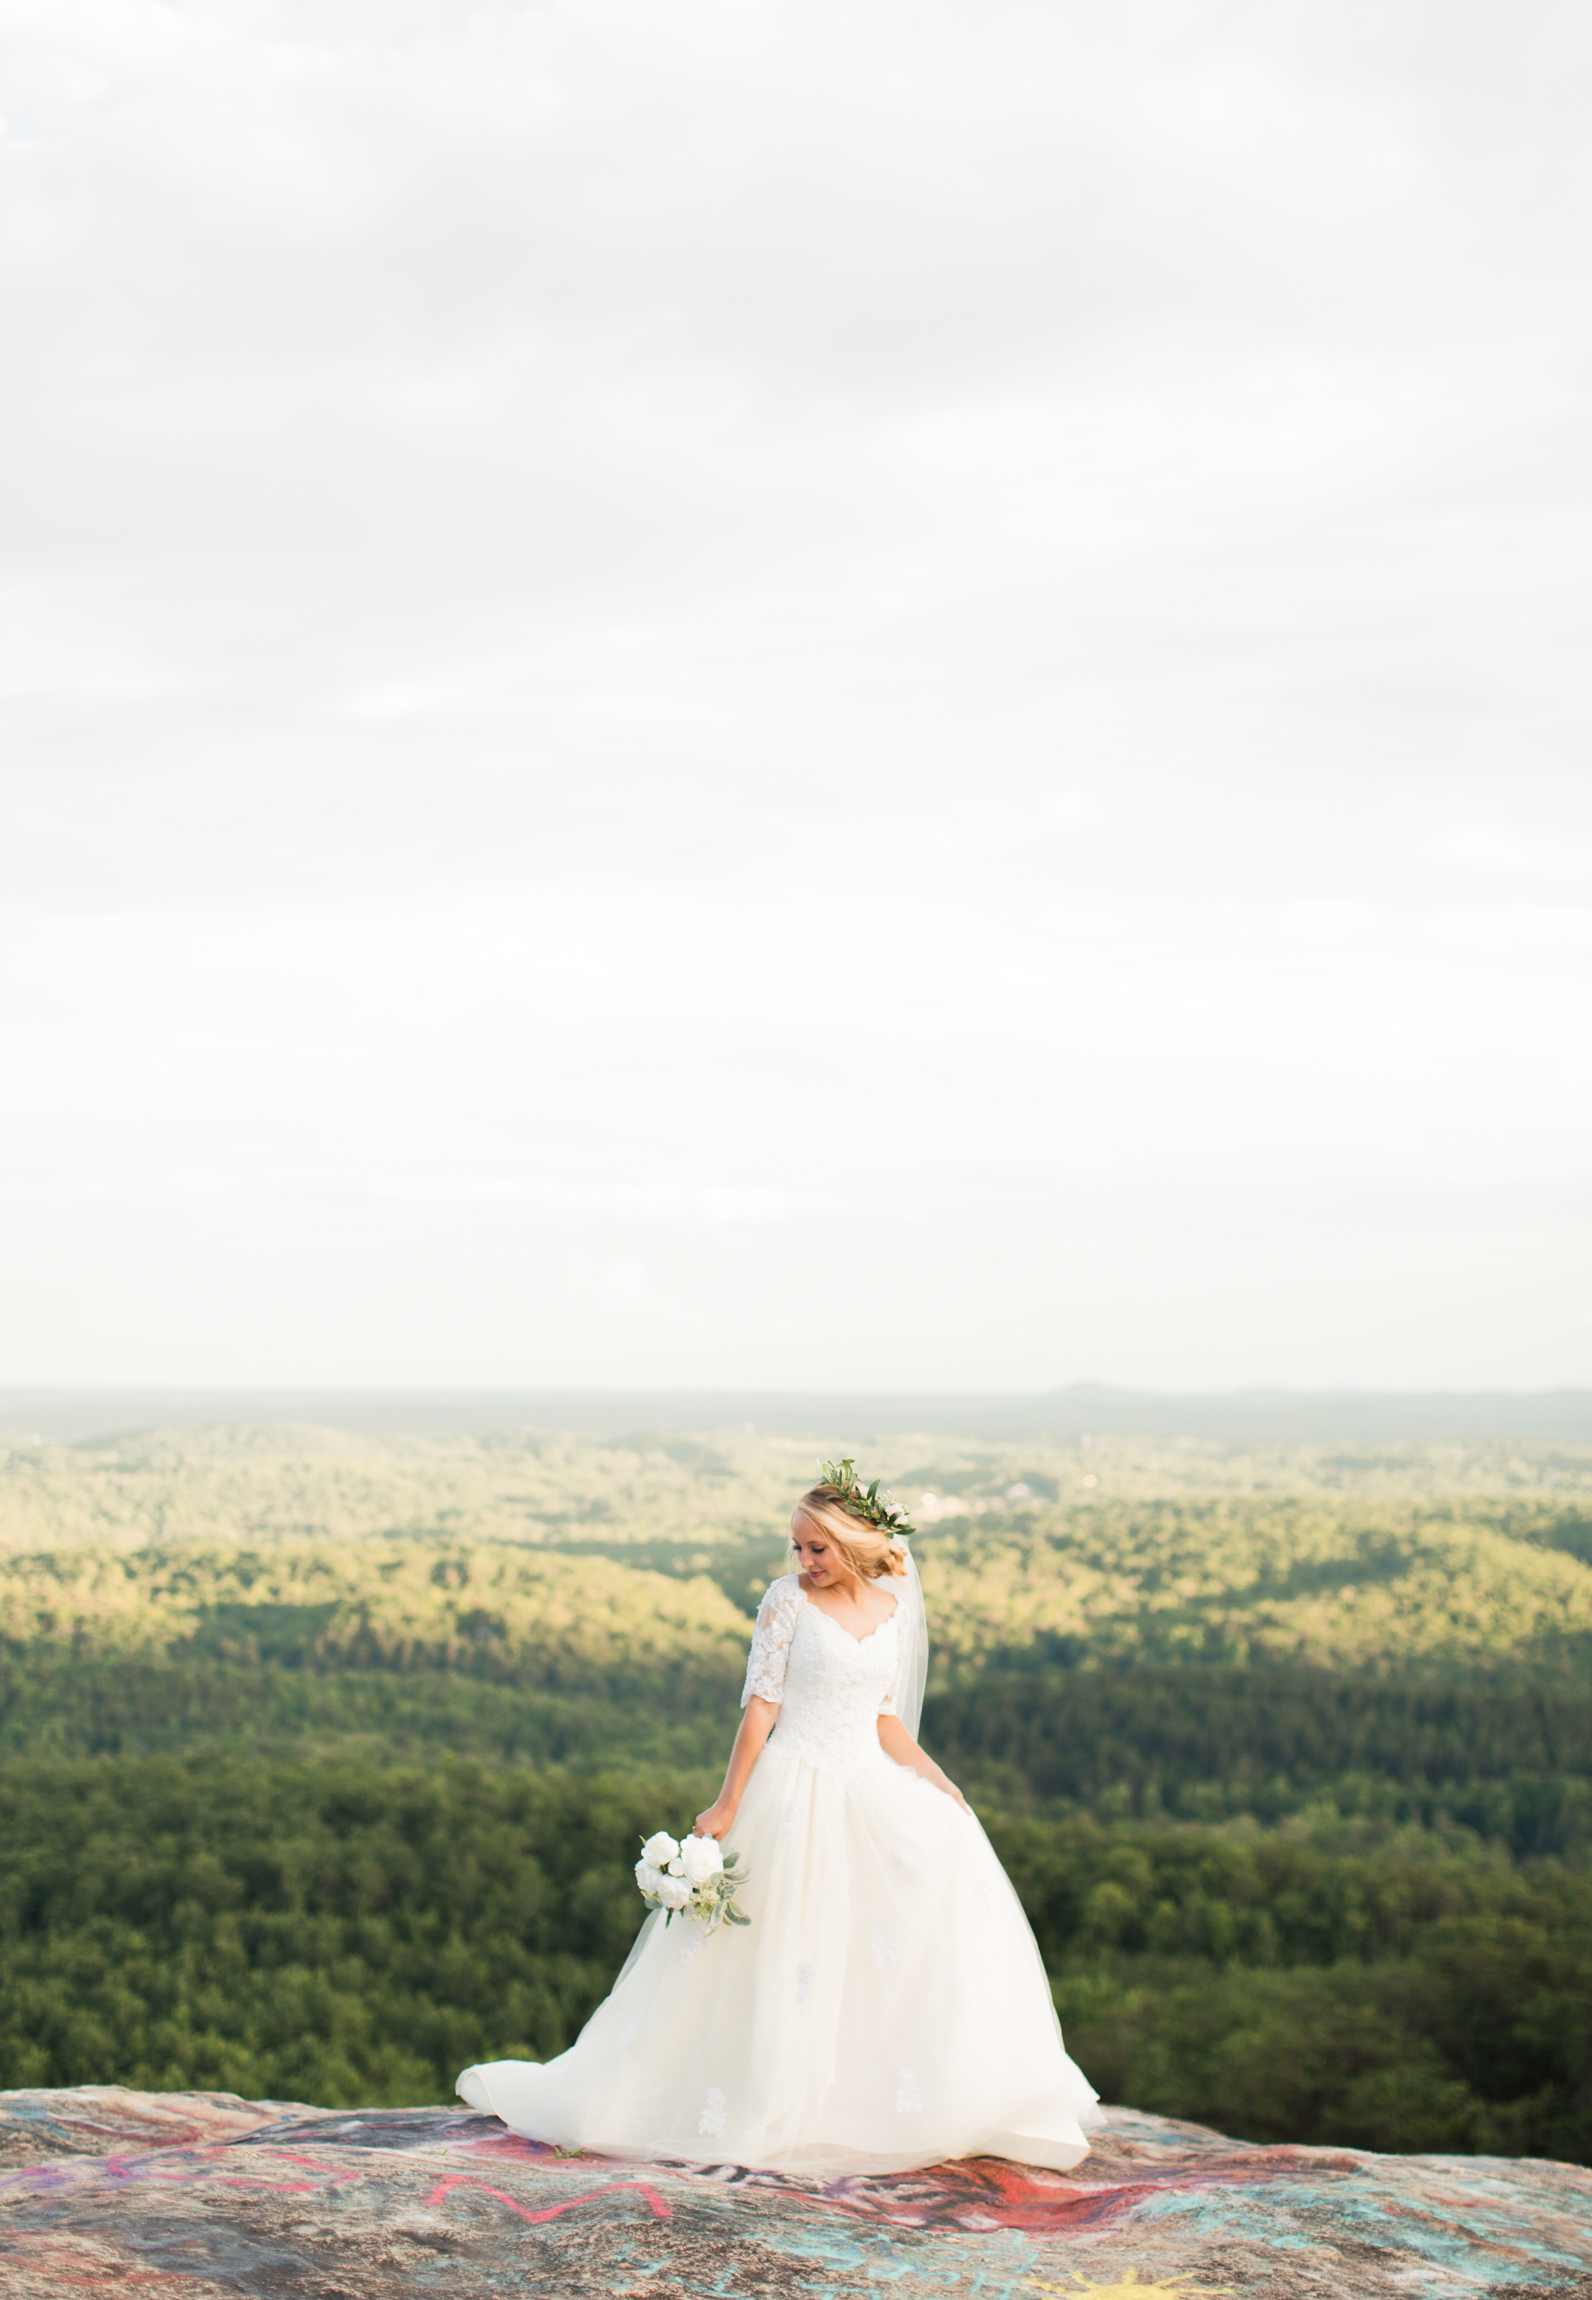 Lauren-Bald Rock South Carolina Bridal Photos-0541.jpg